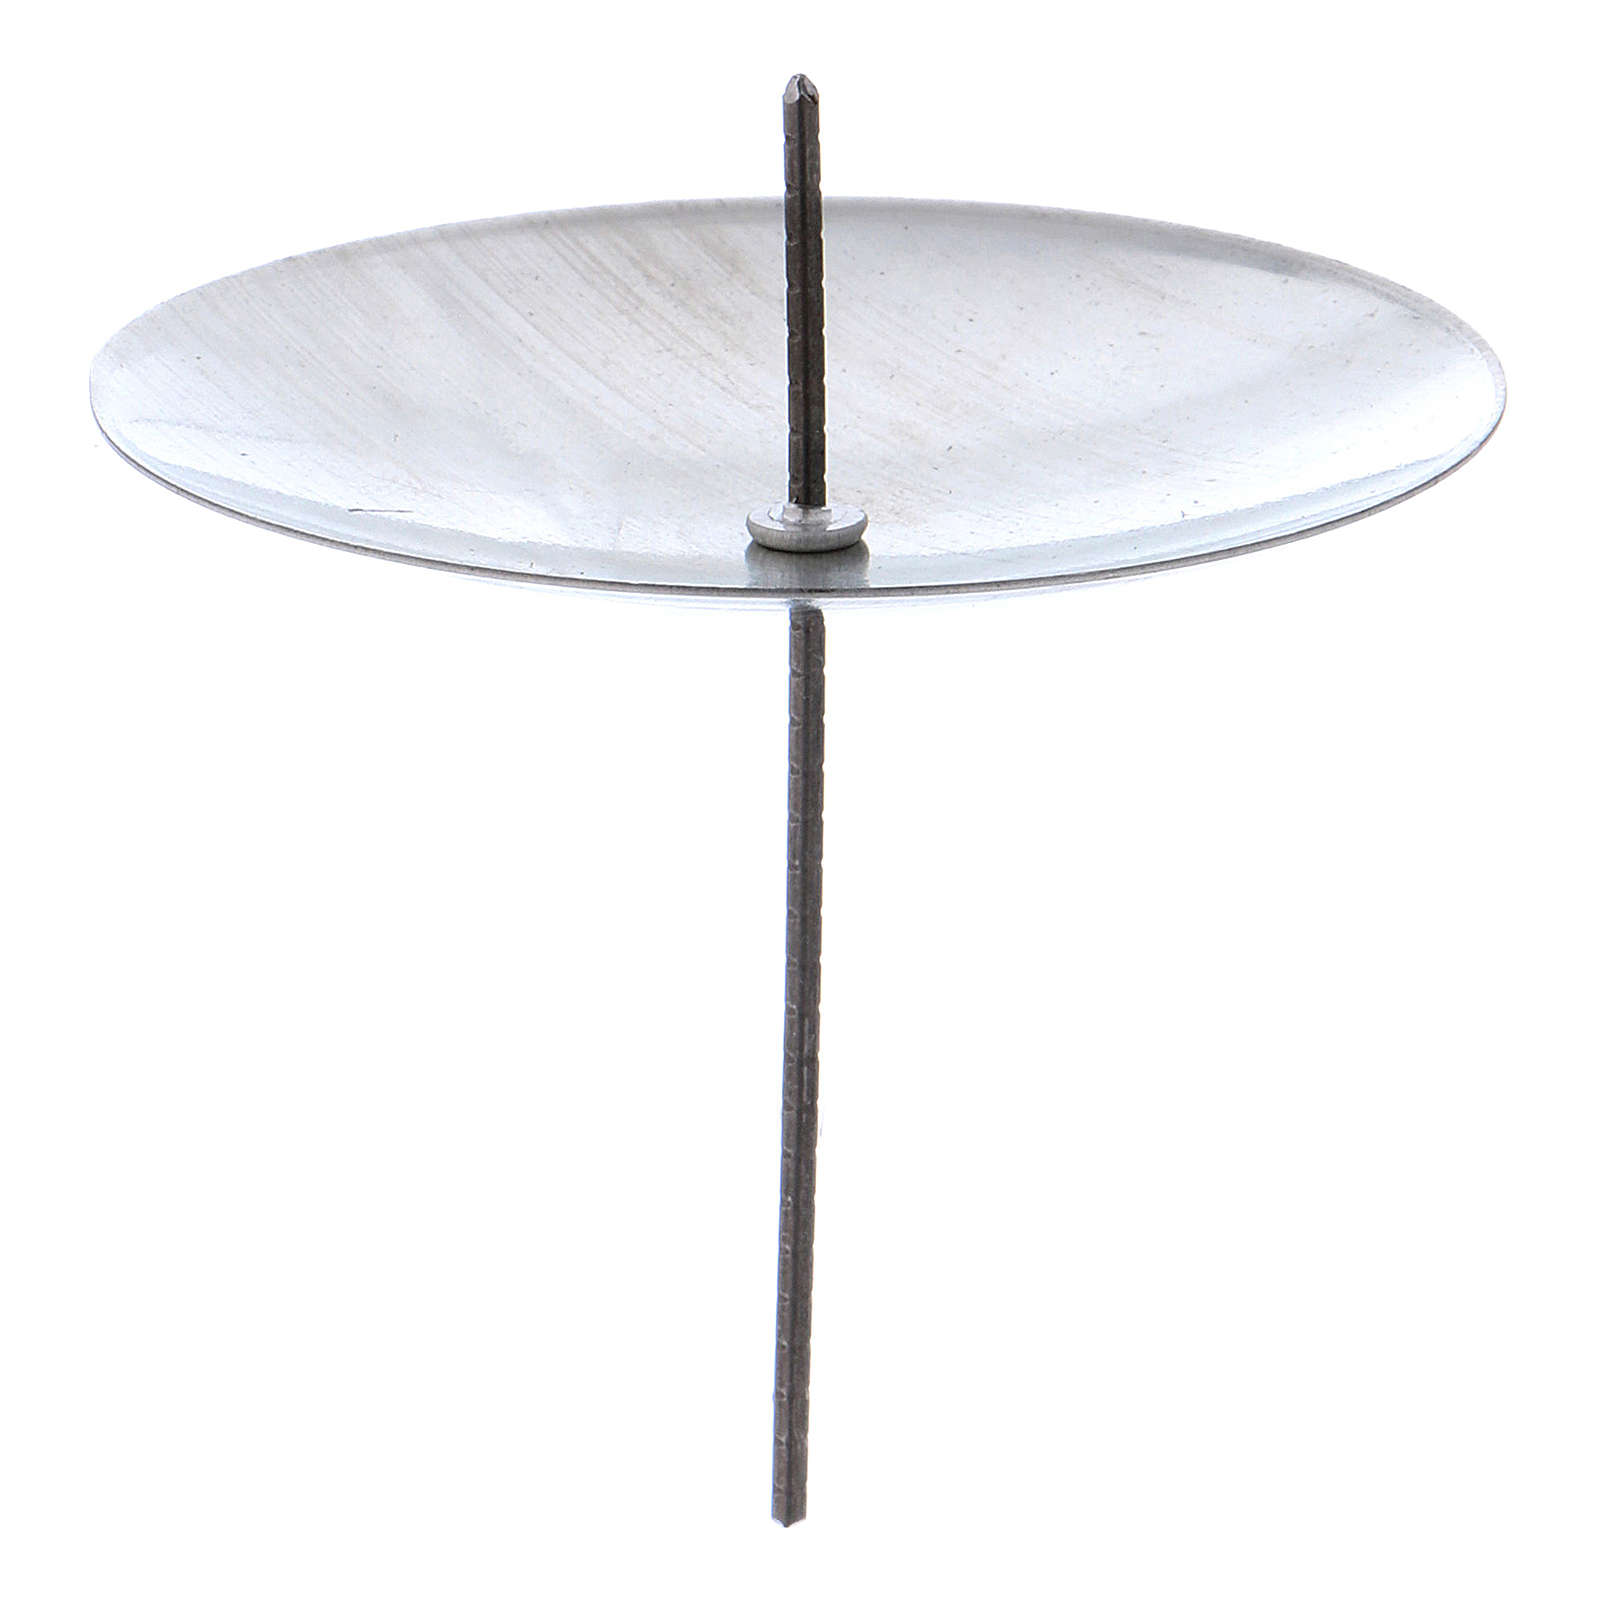 Candle holder for advent wreath silver diameter 5.5 cm, set of 4 3